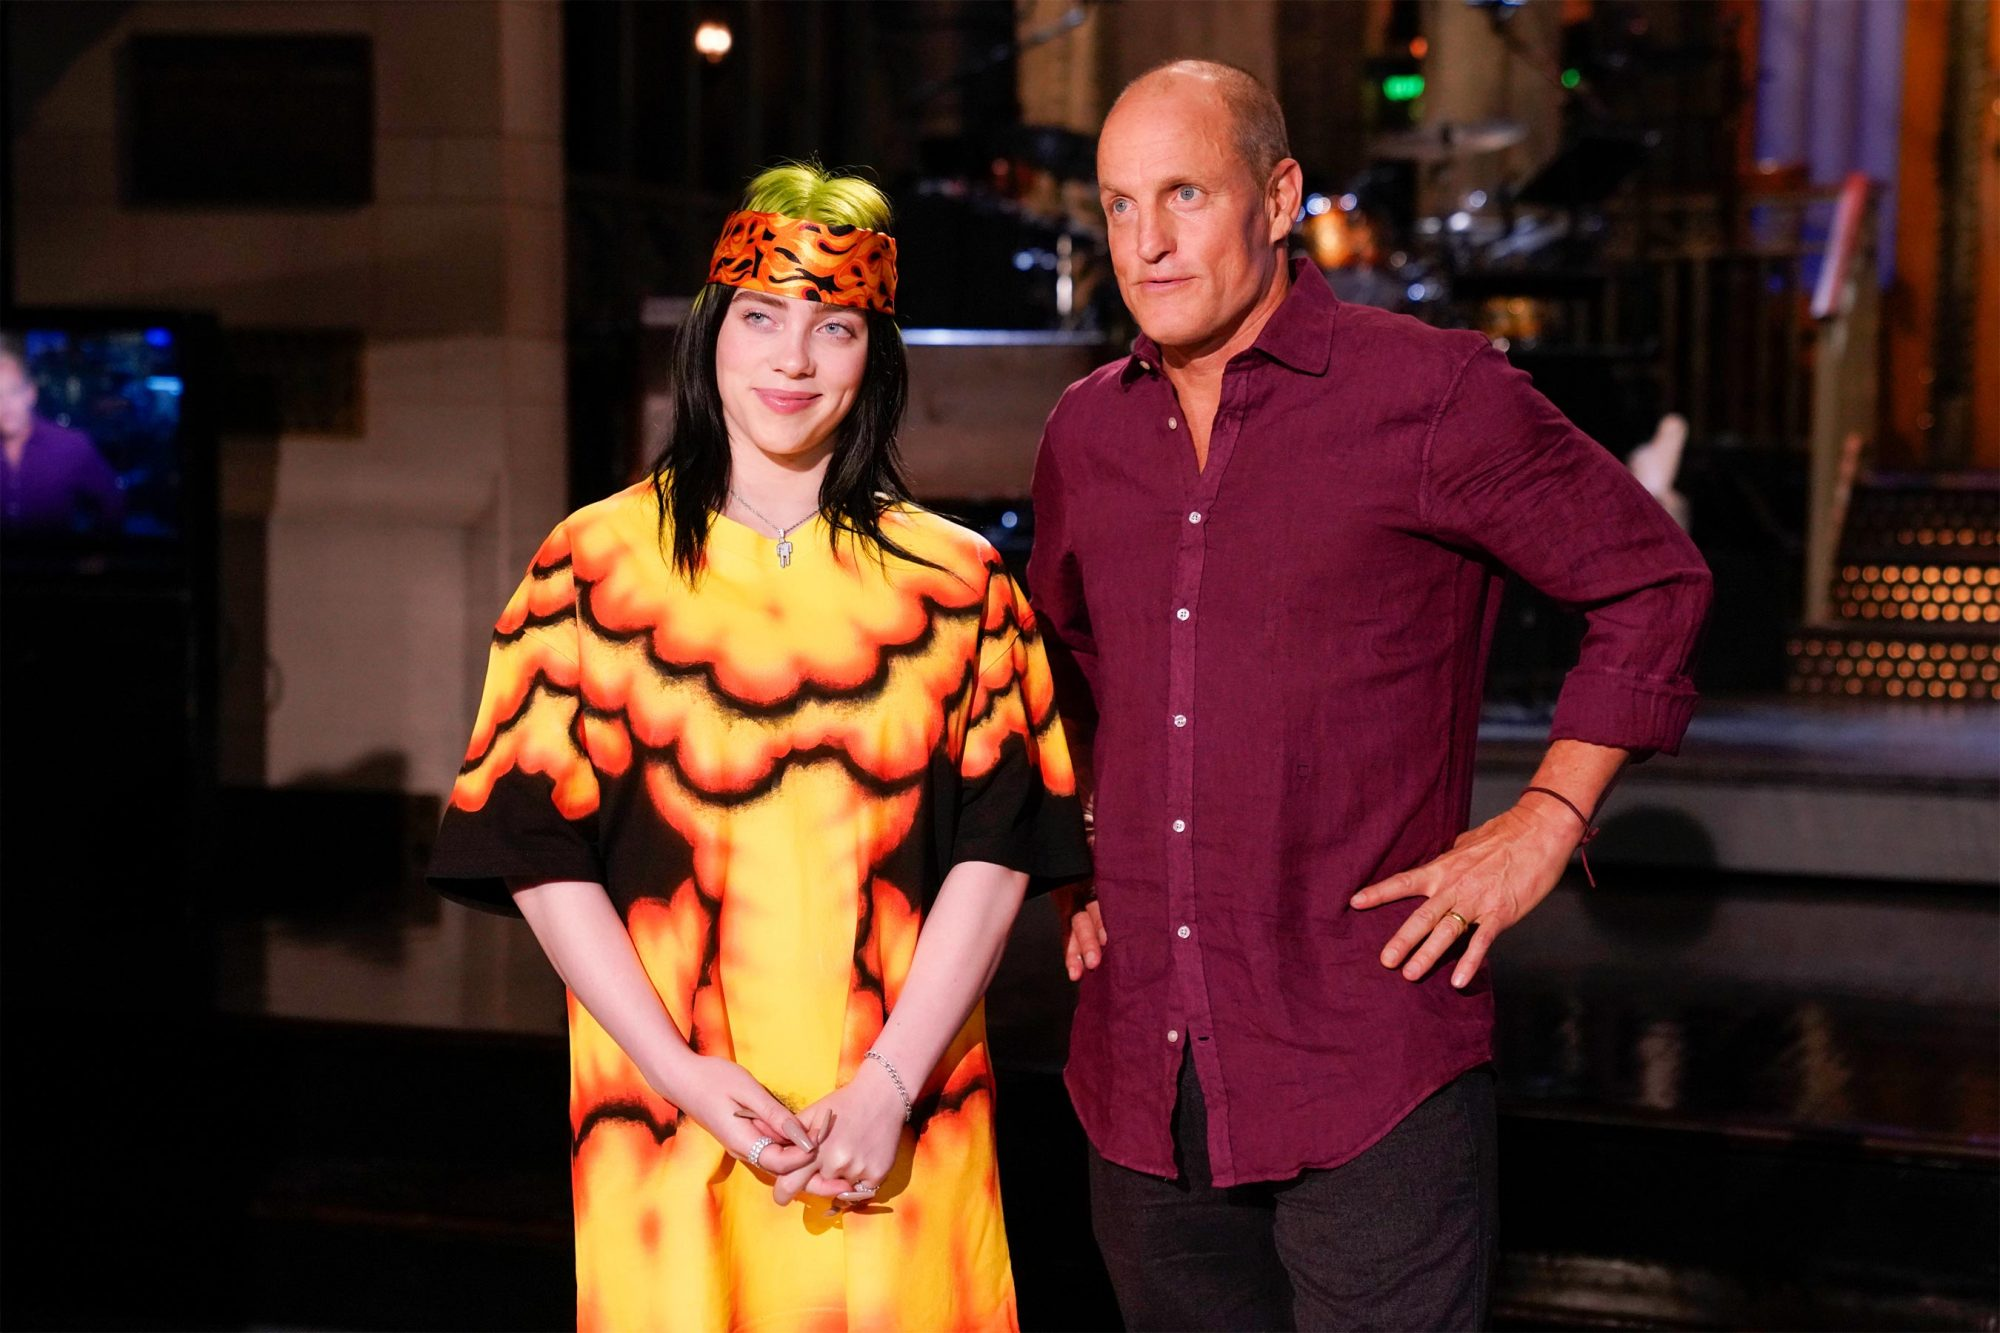 "SATURDAY NIGHT LIVE -- ""Woody Harrelson"" Episode 1768 -- Pictured: (l-r) Musical guest Billie Eilish and host Woody Harrelson during promos in Studio 8H on September 26, 2019 -- (Photo by: Rosalind O'Connor/NBC)"